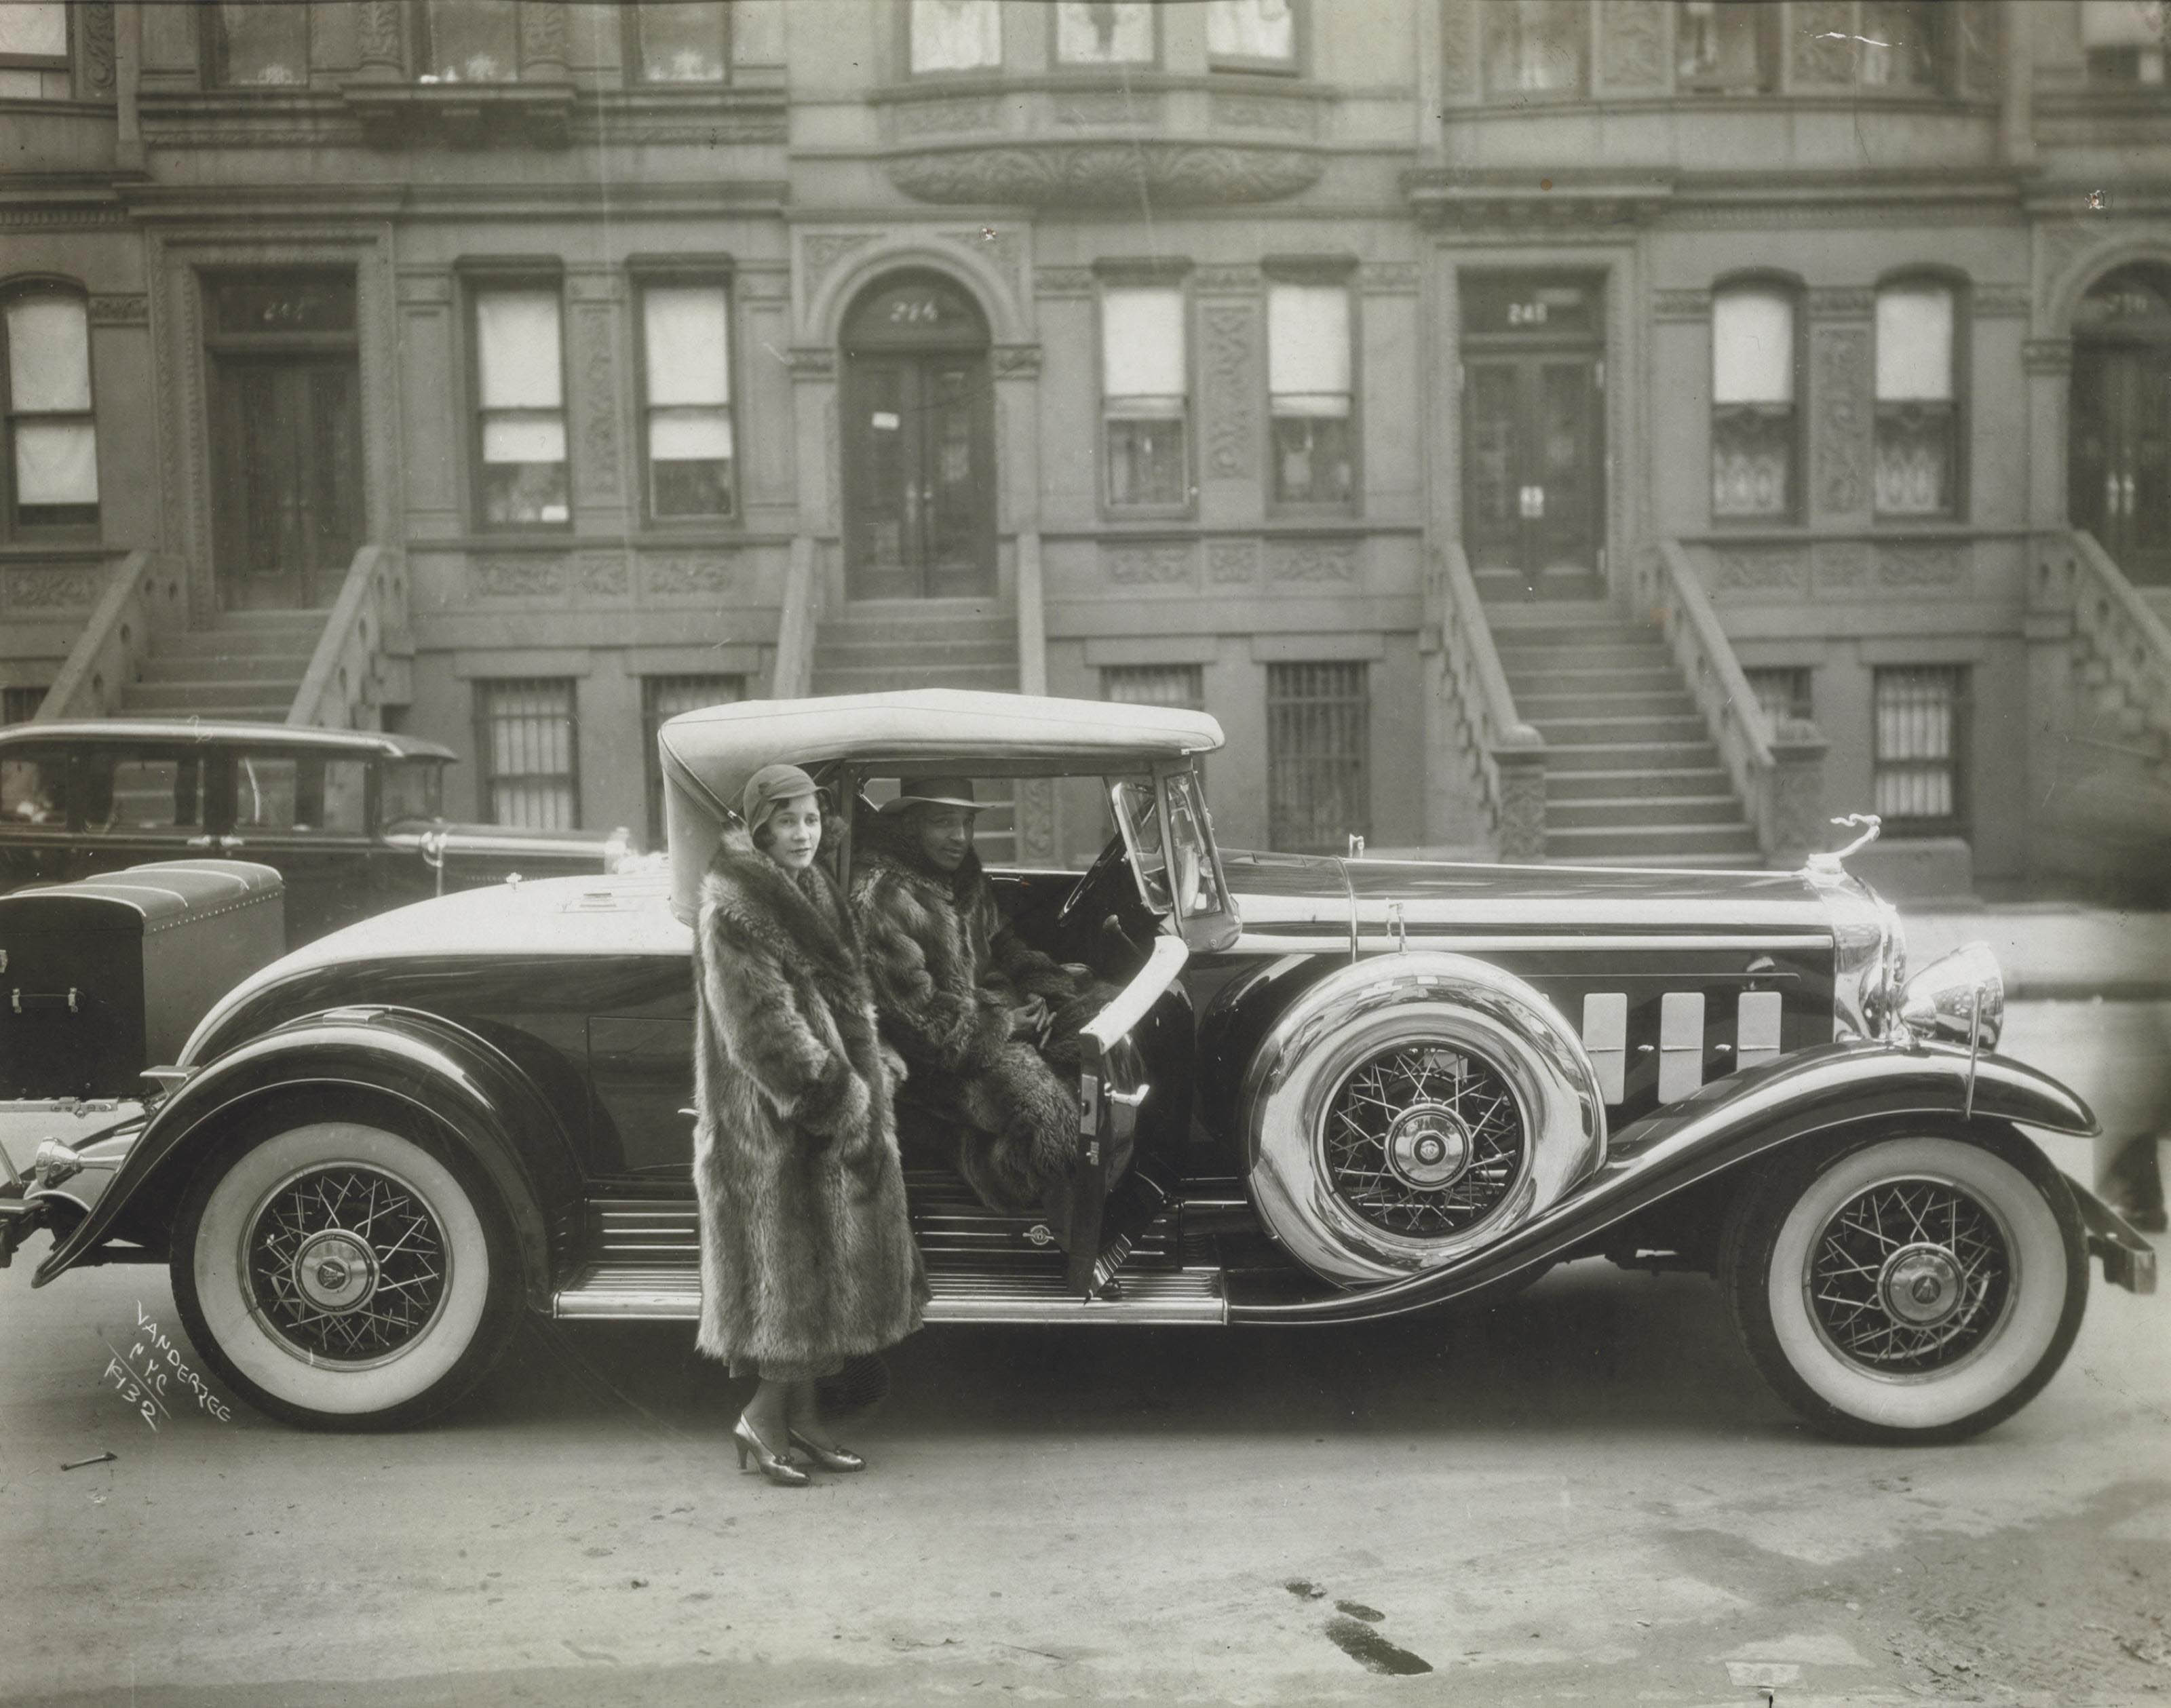 Untitled (West 127th Street, Harlem), 1932